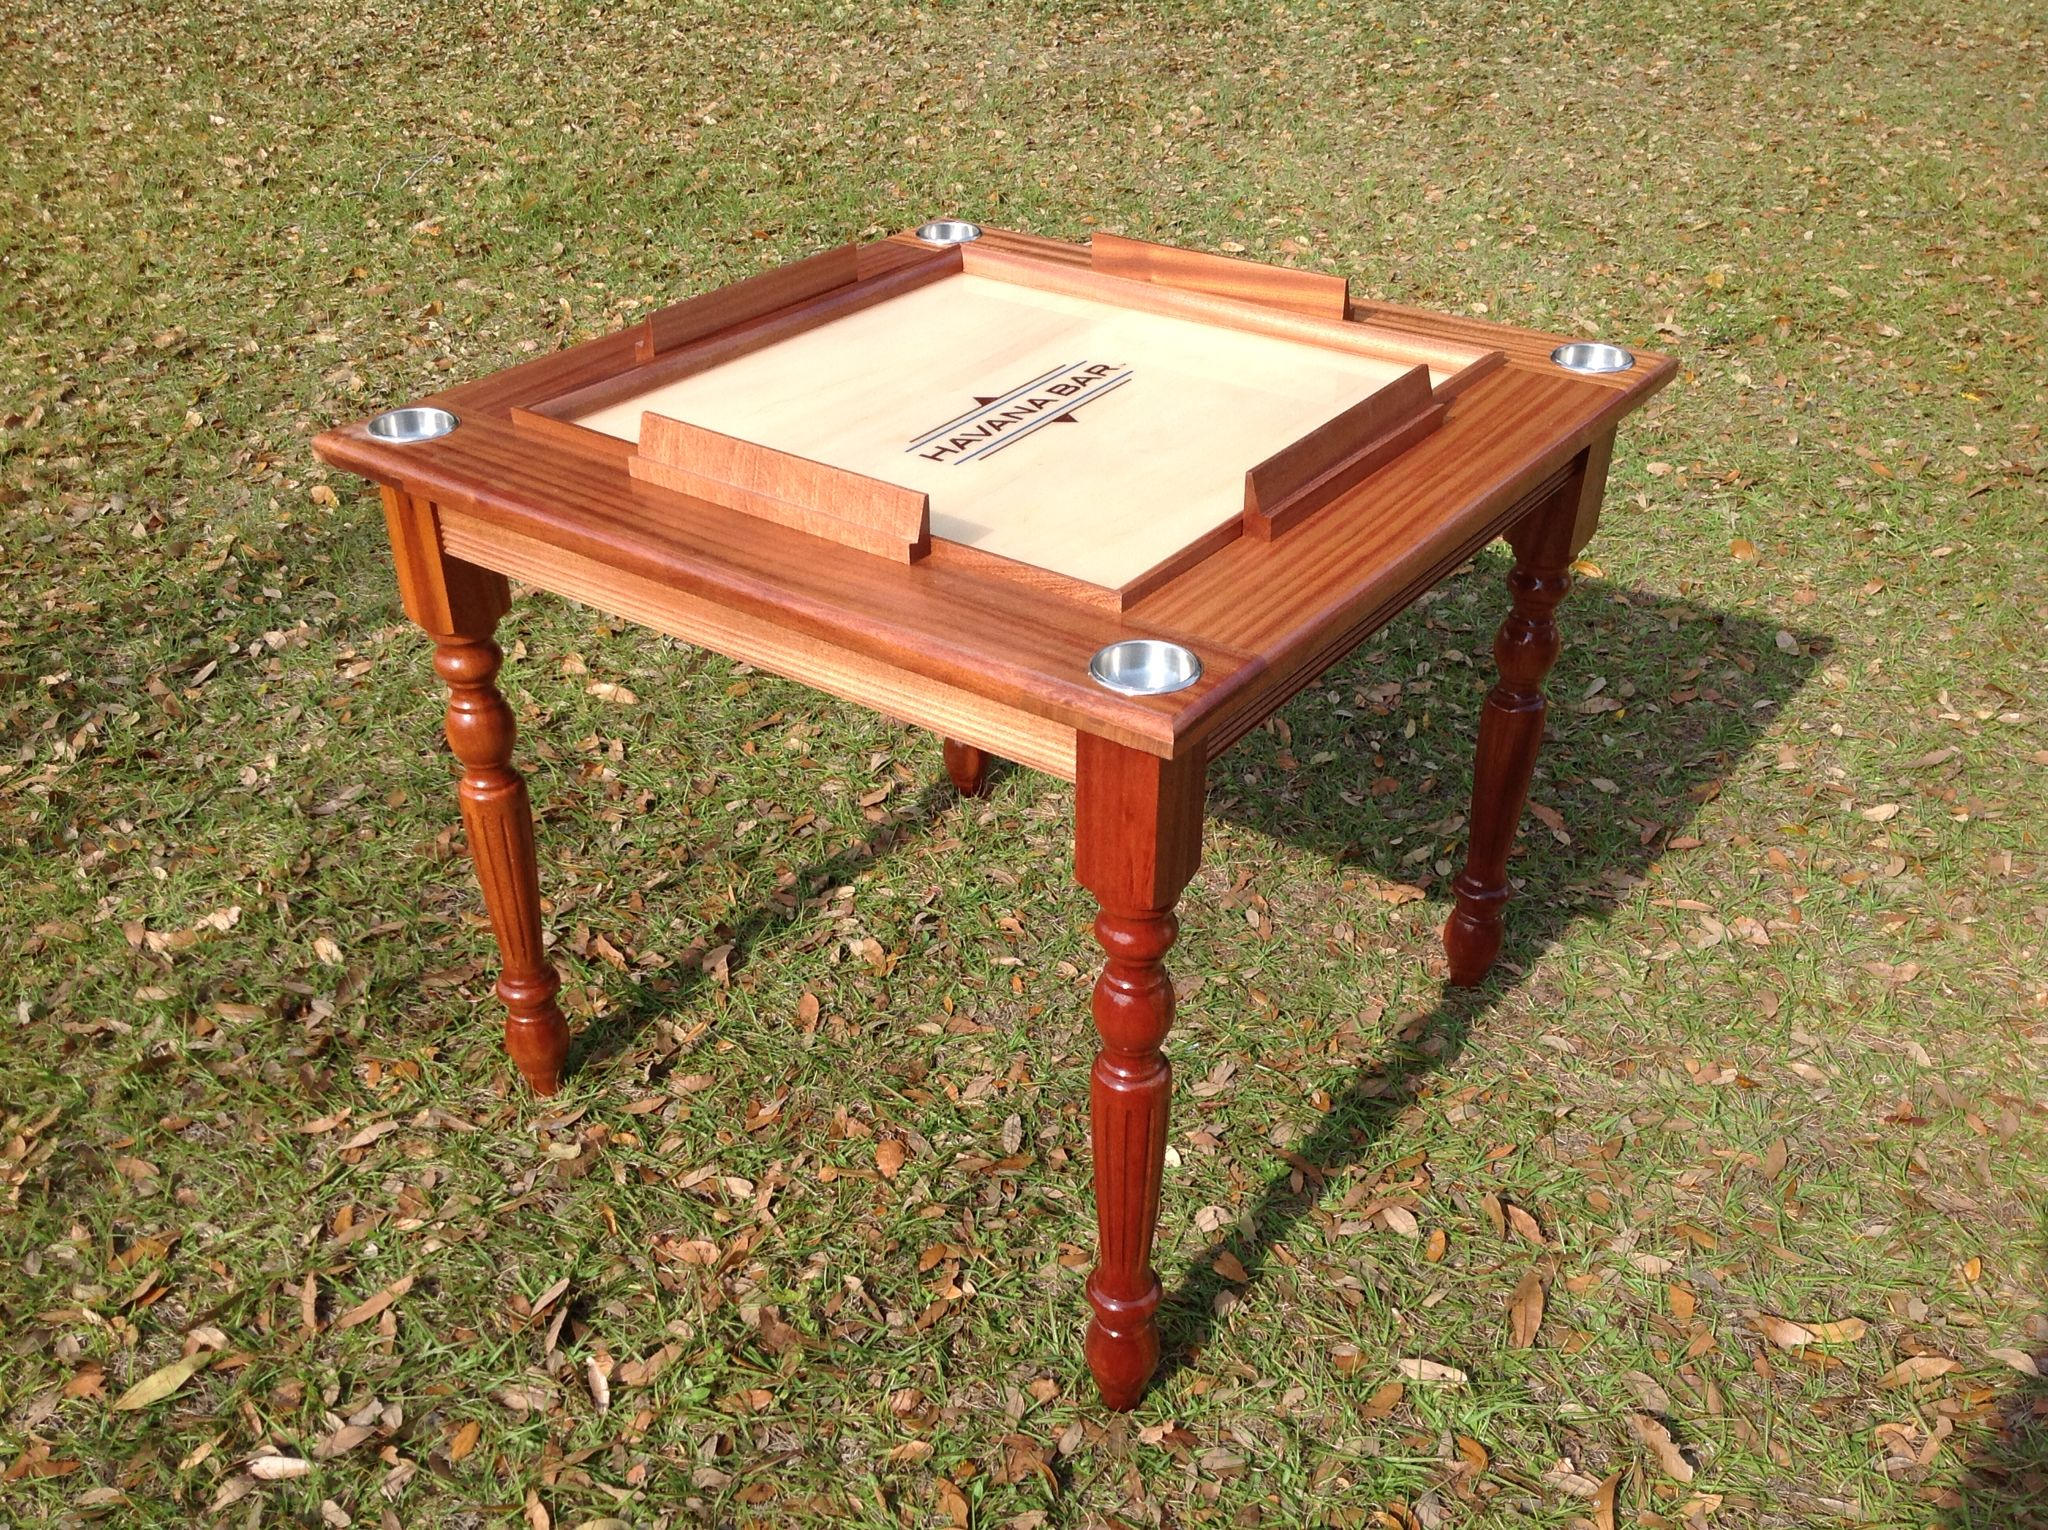 Solid Mahogany Domino Table With Turn Legs And Locked Drawers Domino Table Solid Mahogany Mahogany